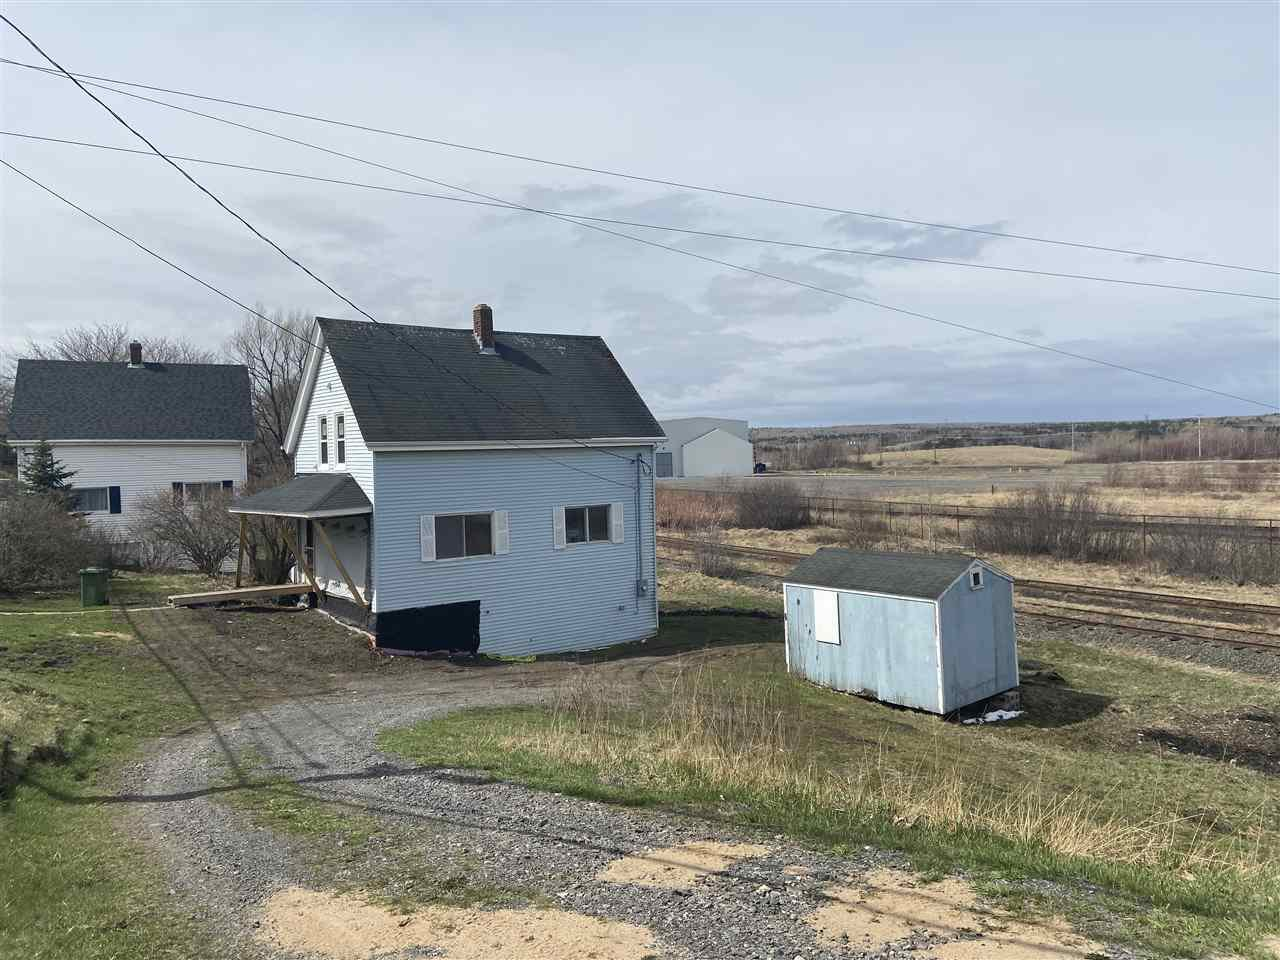 Main Photo: 185 Main Street in Trenton: 107-Trenton,Westville,Pictou Residential for sale (Northern Region)  : MLS®# 202006998